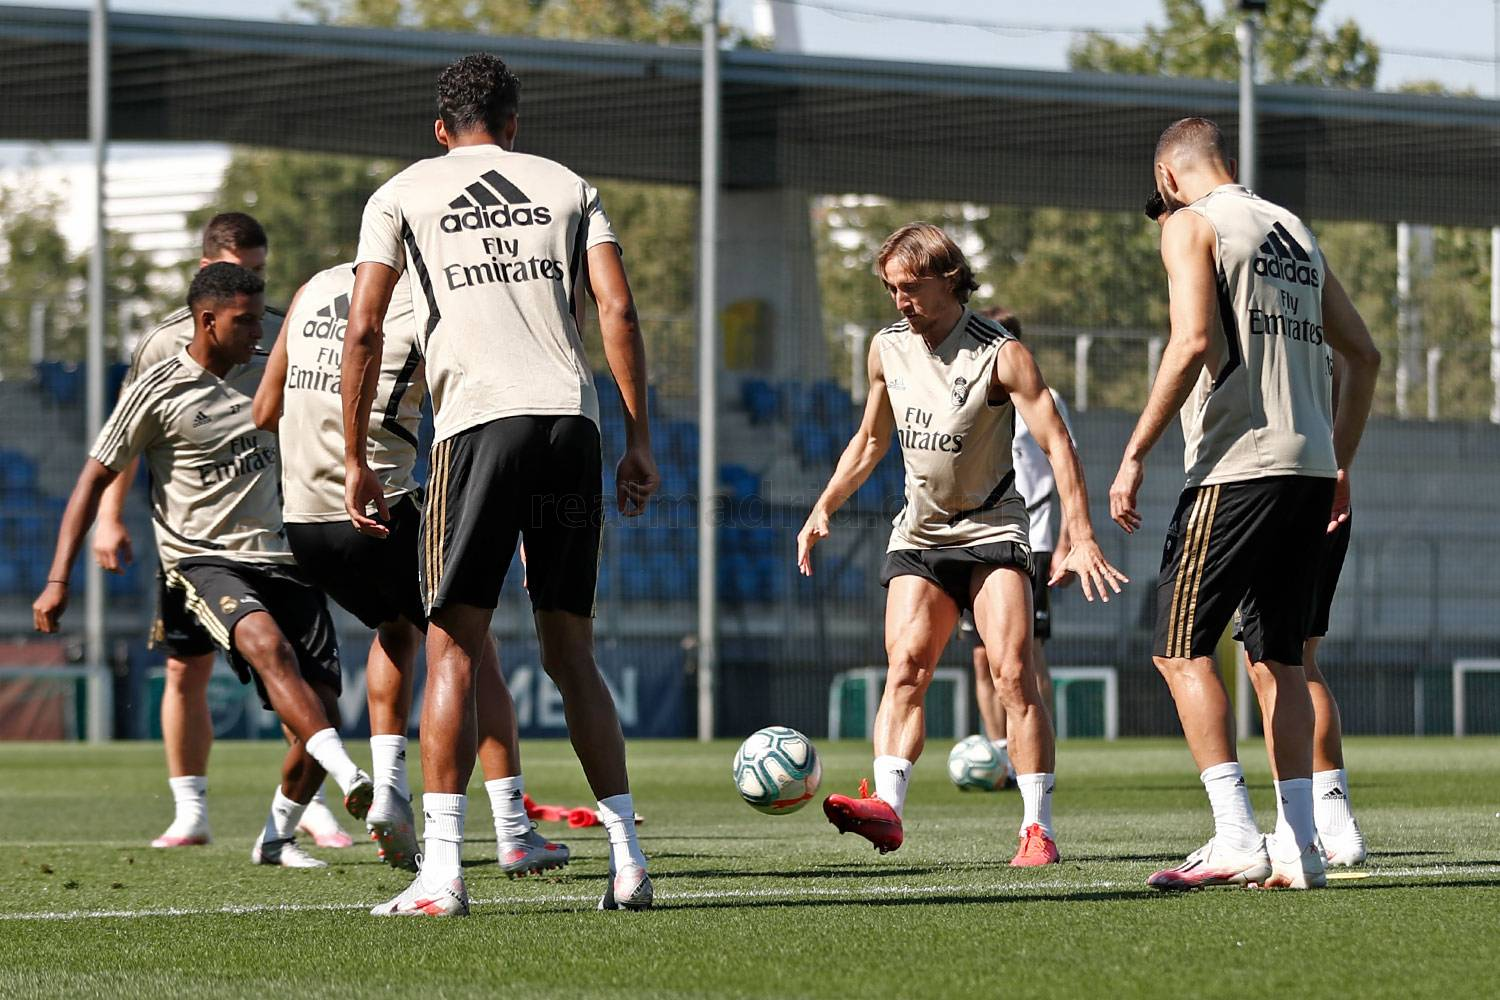 Real Madrid - Entrenamiento del Real Madrid  - 15-07-2020